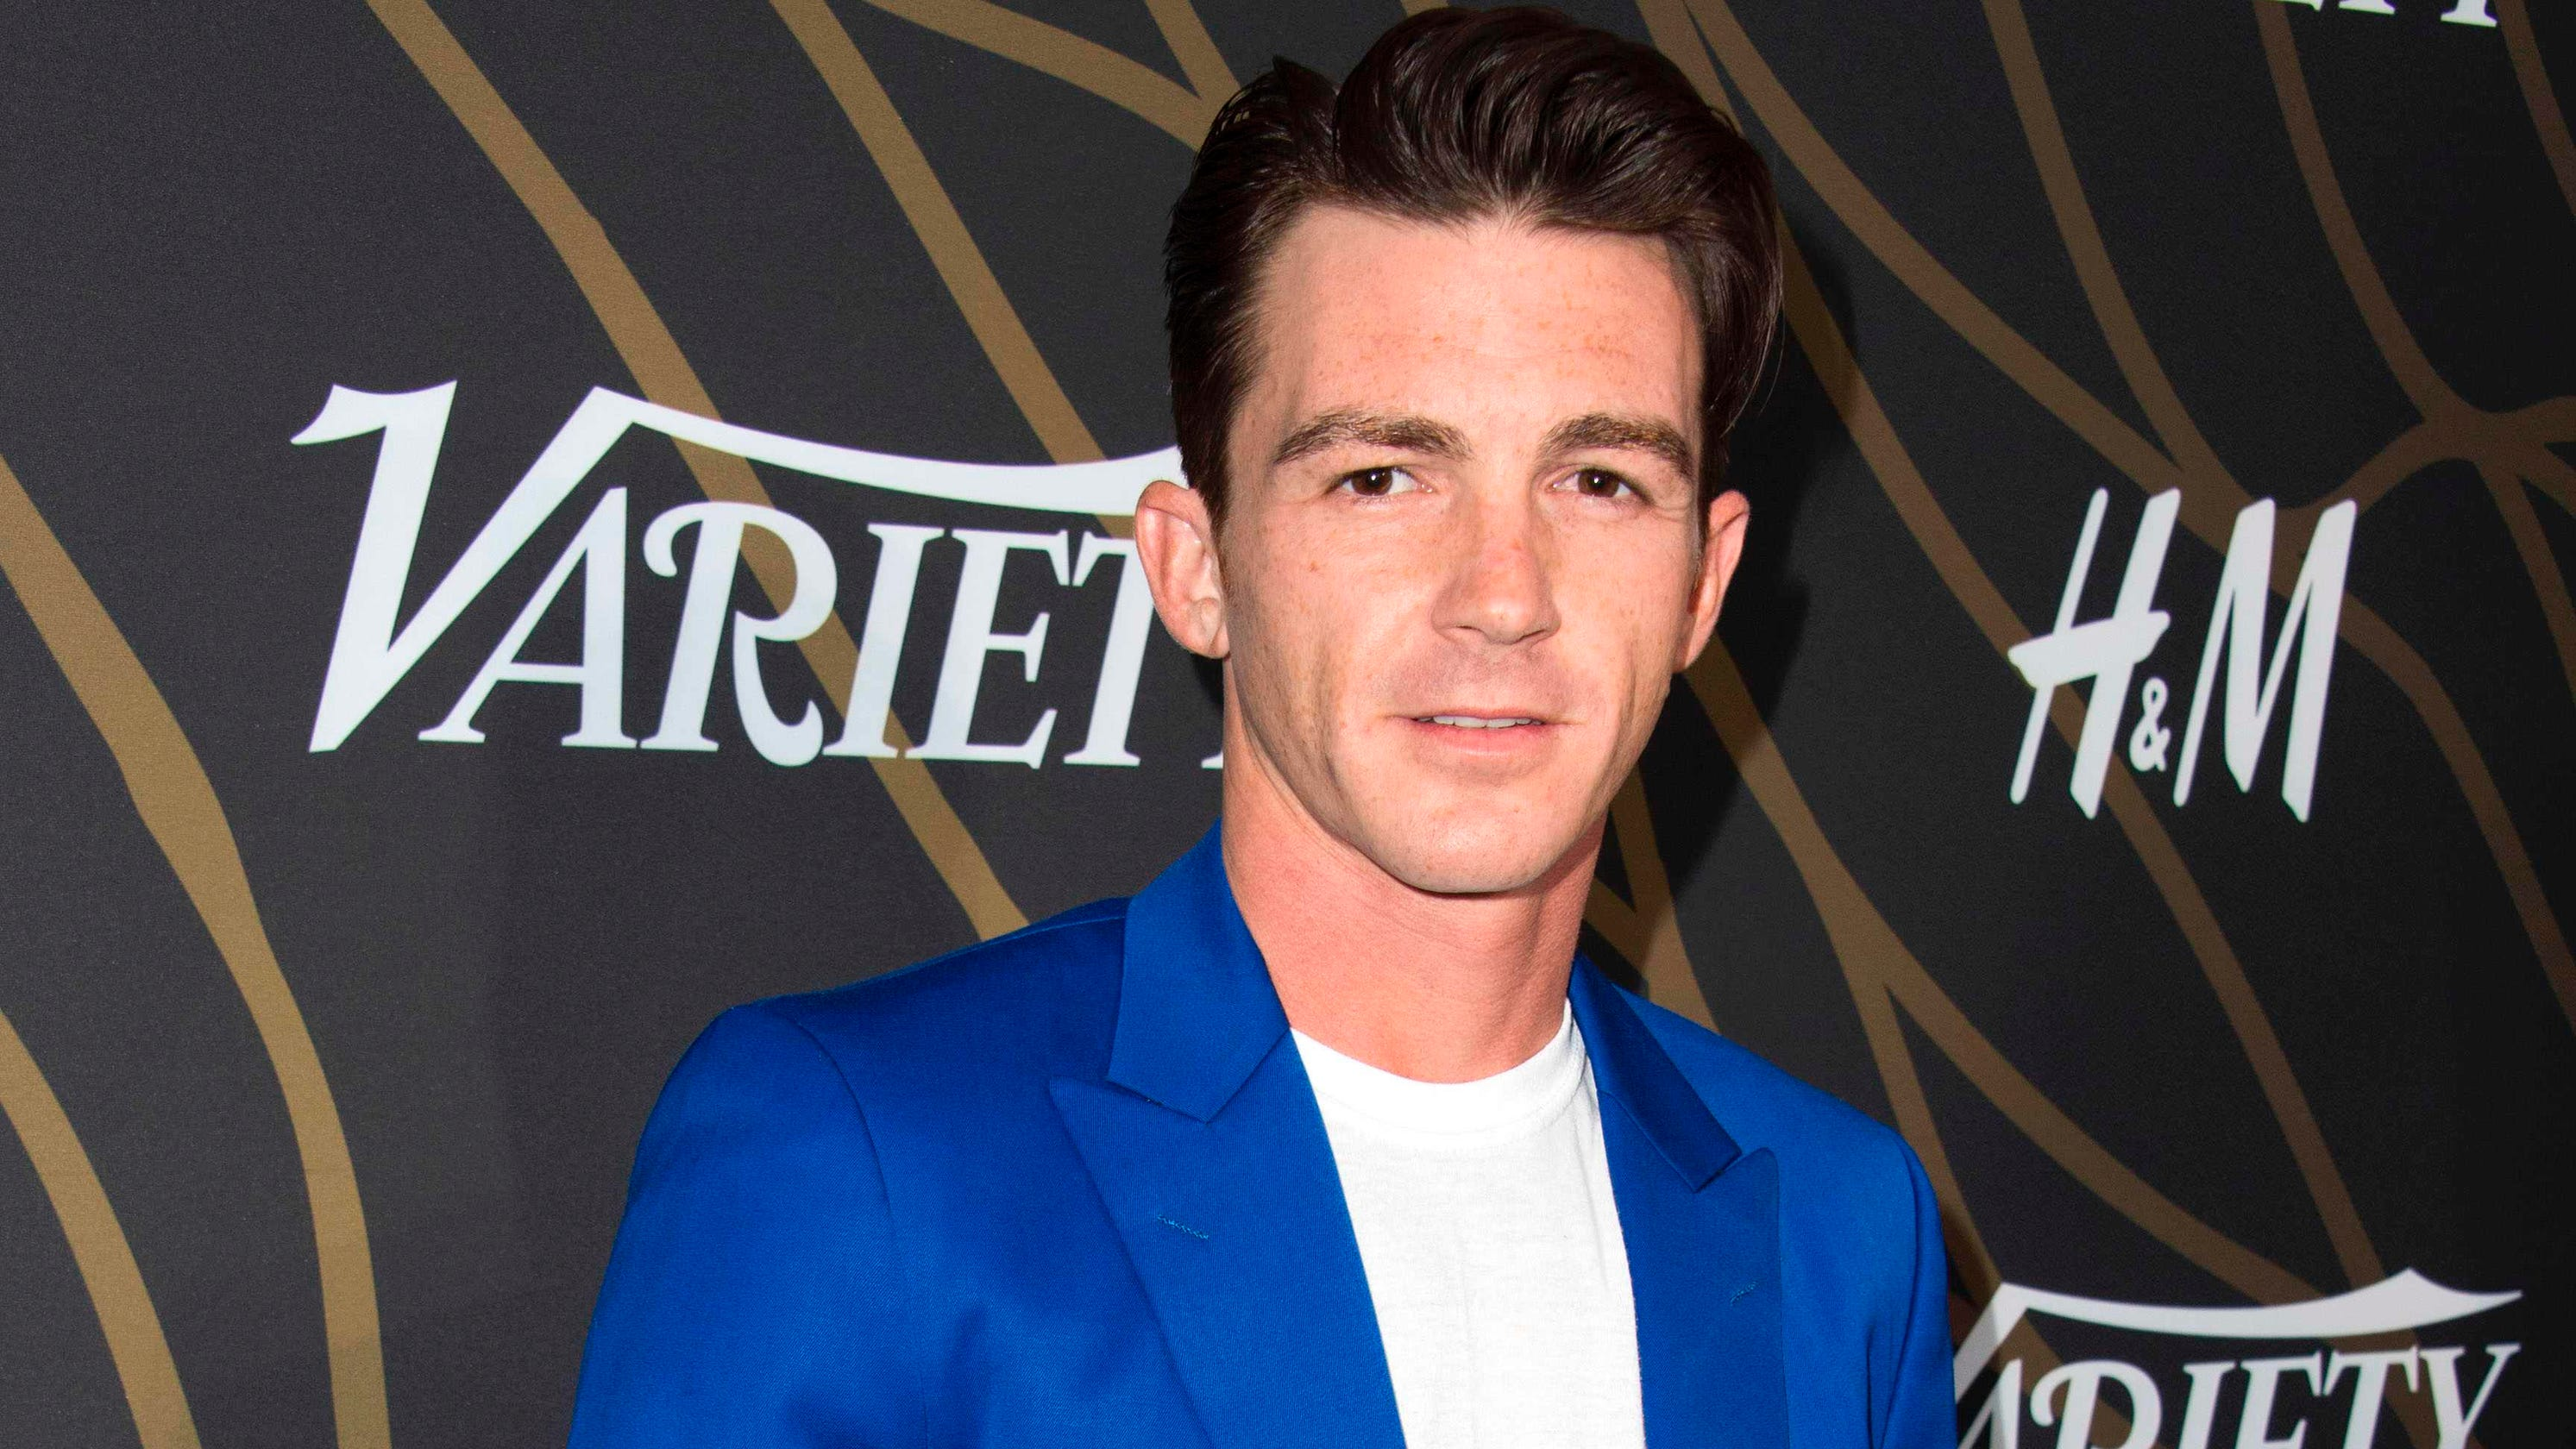 Drake Bell denies abuse allegations from ex-girlfriend: 'I am reviewing my legal options' - USA TODAY